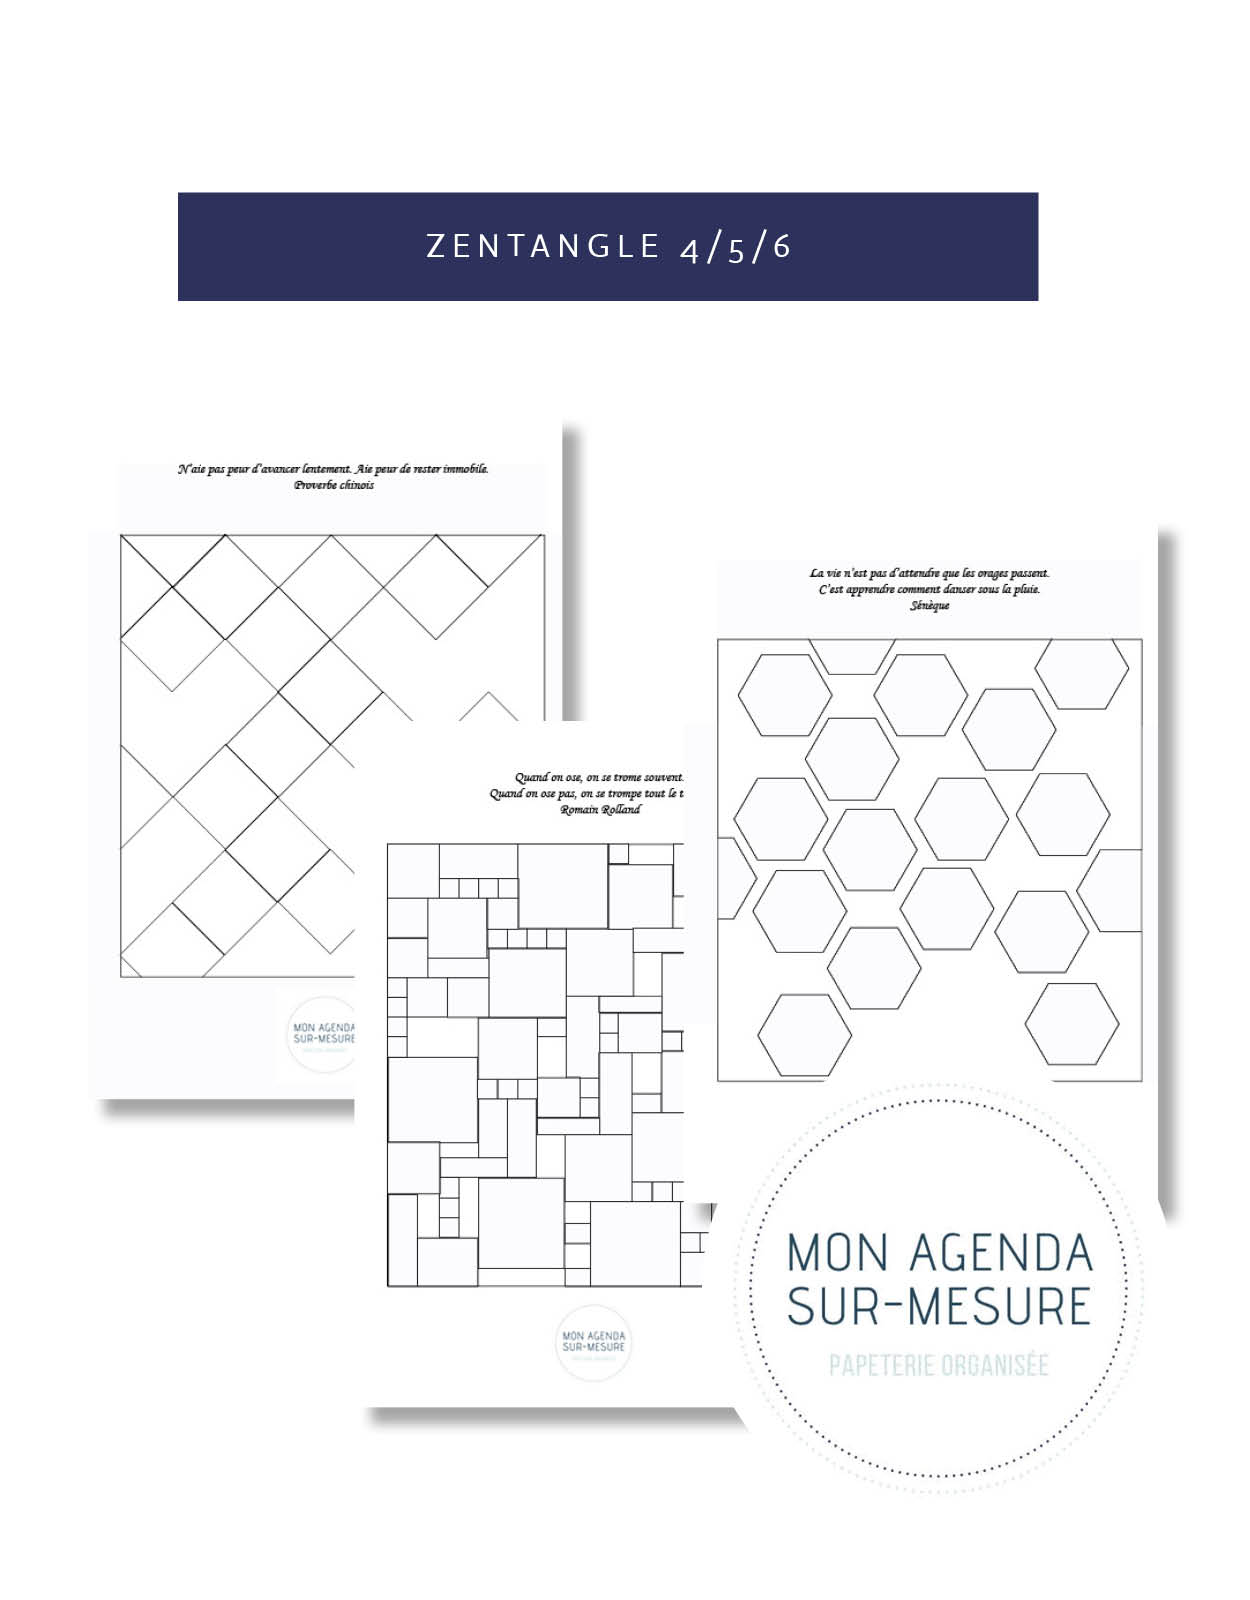 page-agenda-sur-mesure-zentangle-creatif